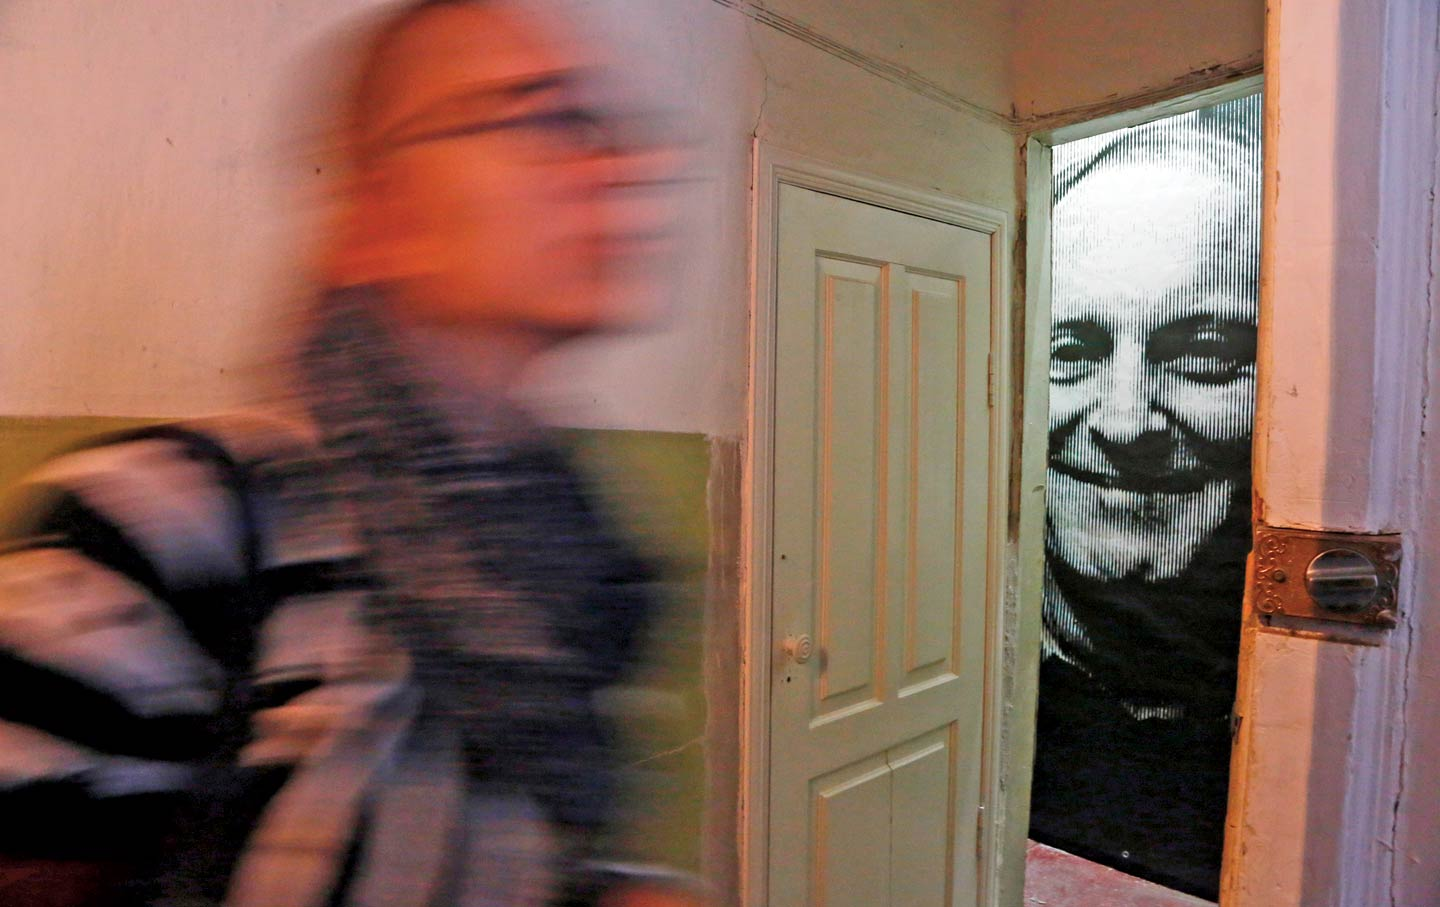 Joseph Brodsky's childhood apartment is now a museum in St. Petersburg, Russia.